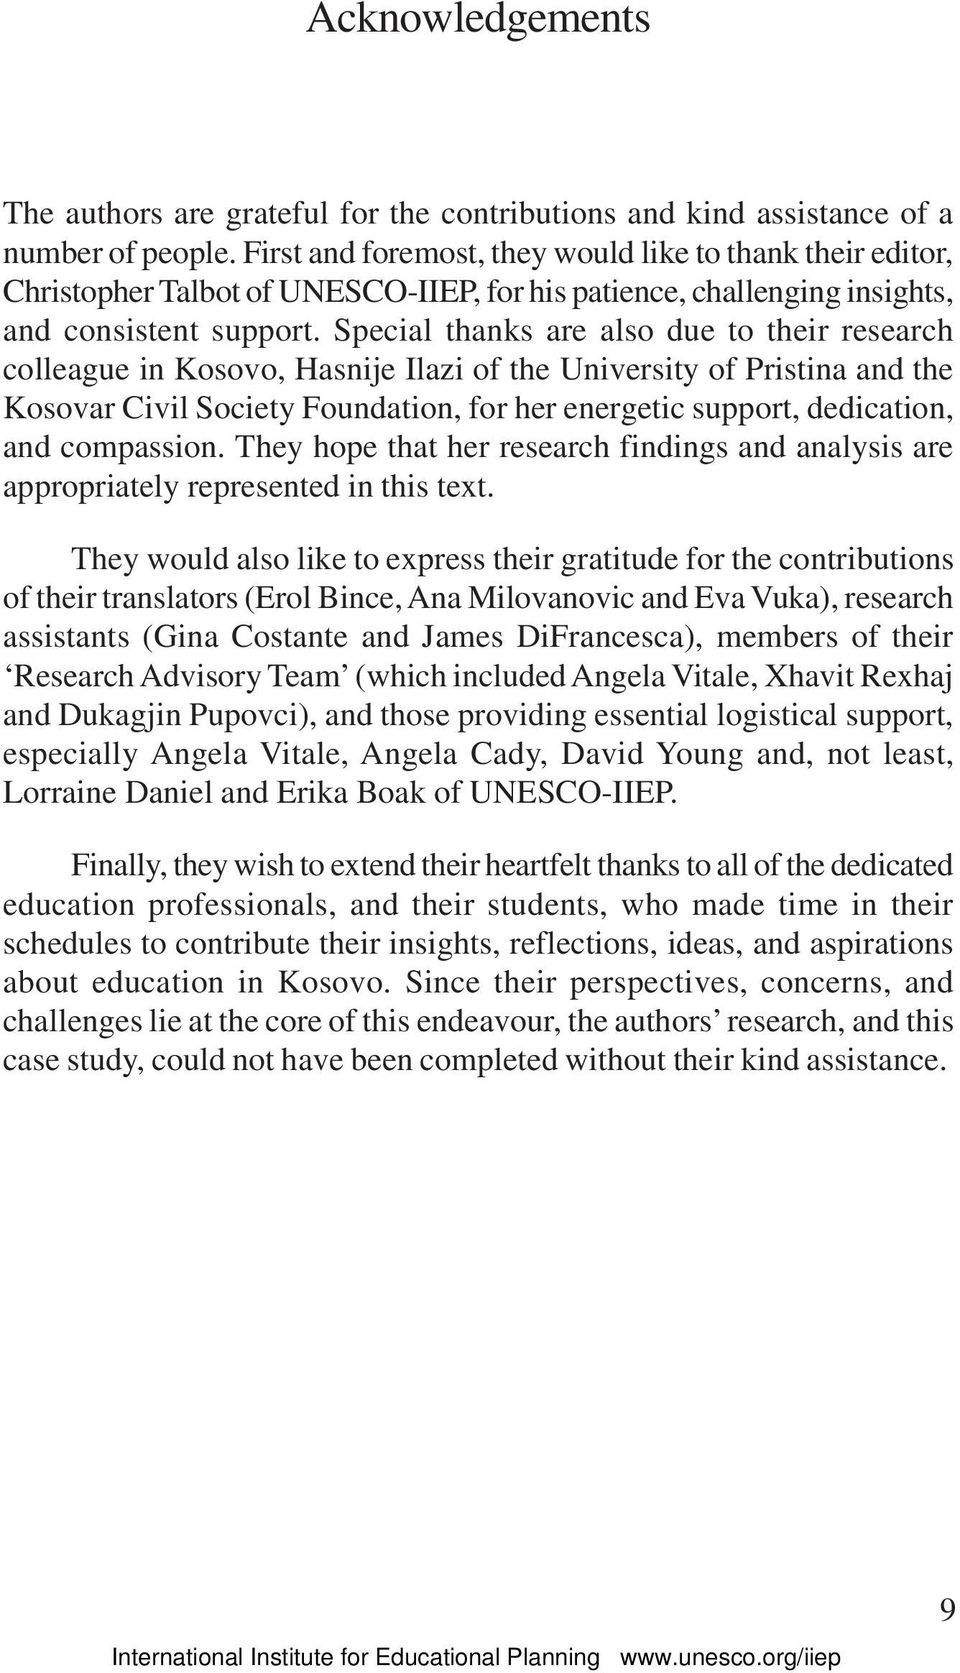 Special thanks are also due to their research colleague in Kosovo, Hasnije Ilazi of the University of Pristina and the Kosovar Civil Society Foundation, for her energetic support, dedication, and